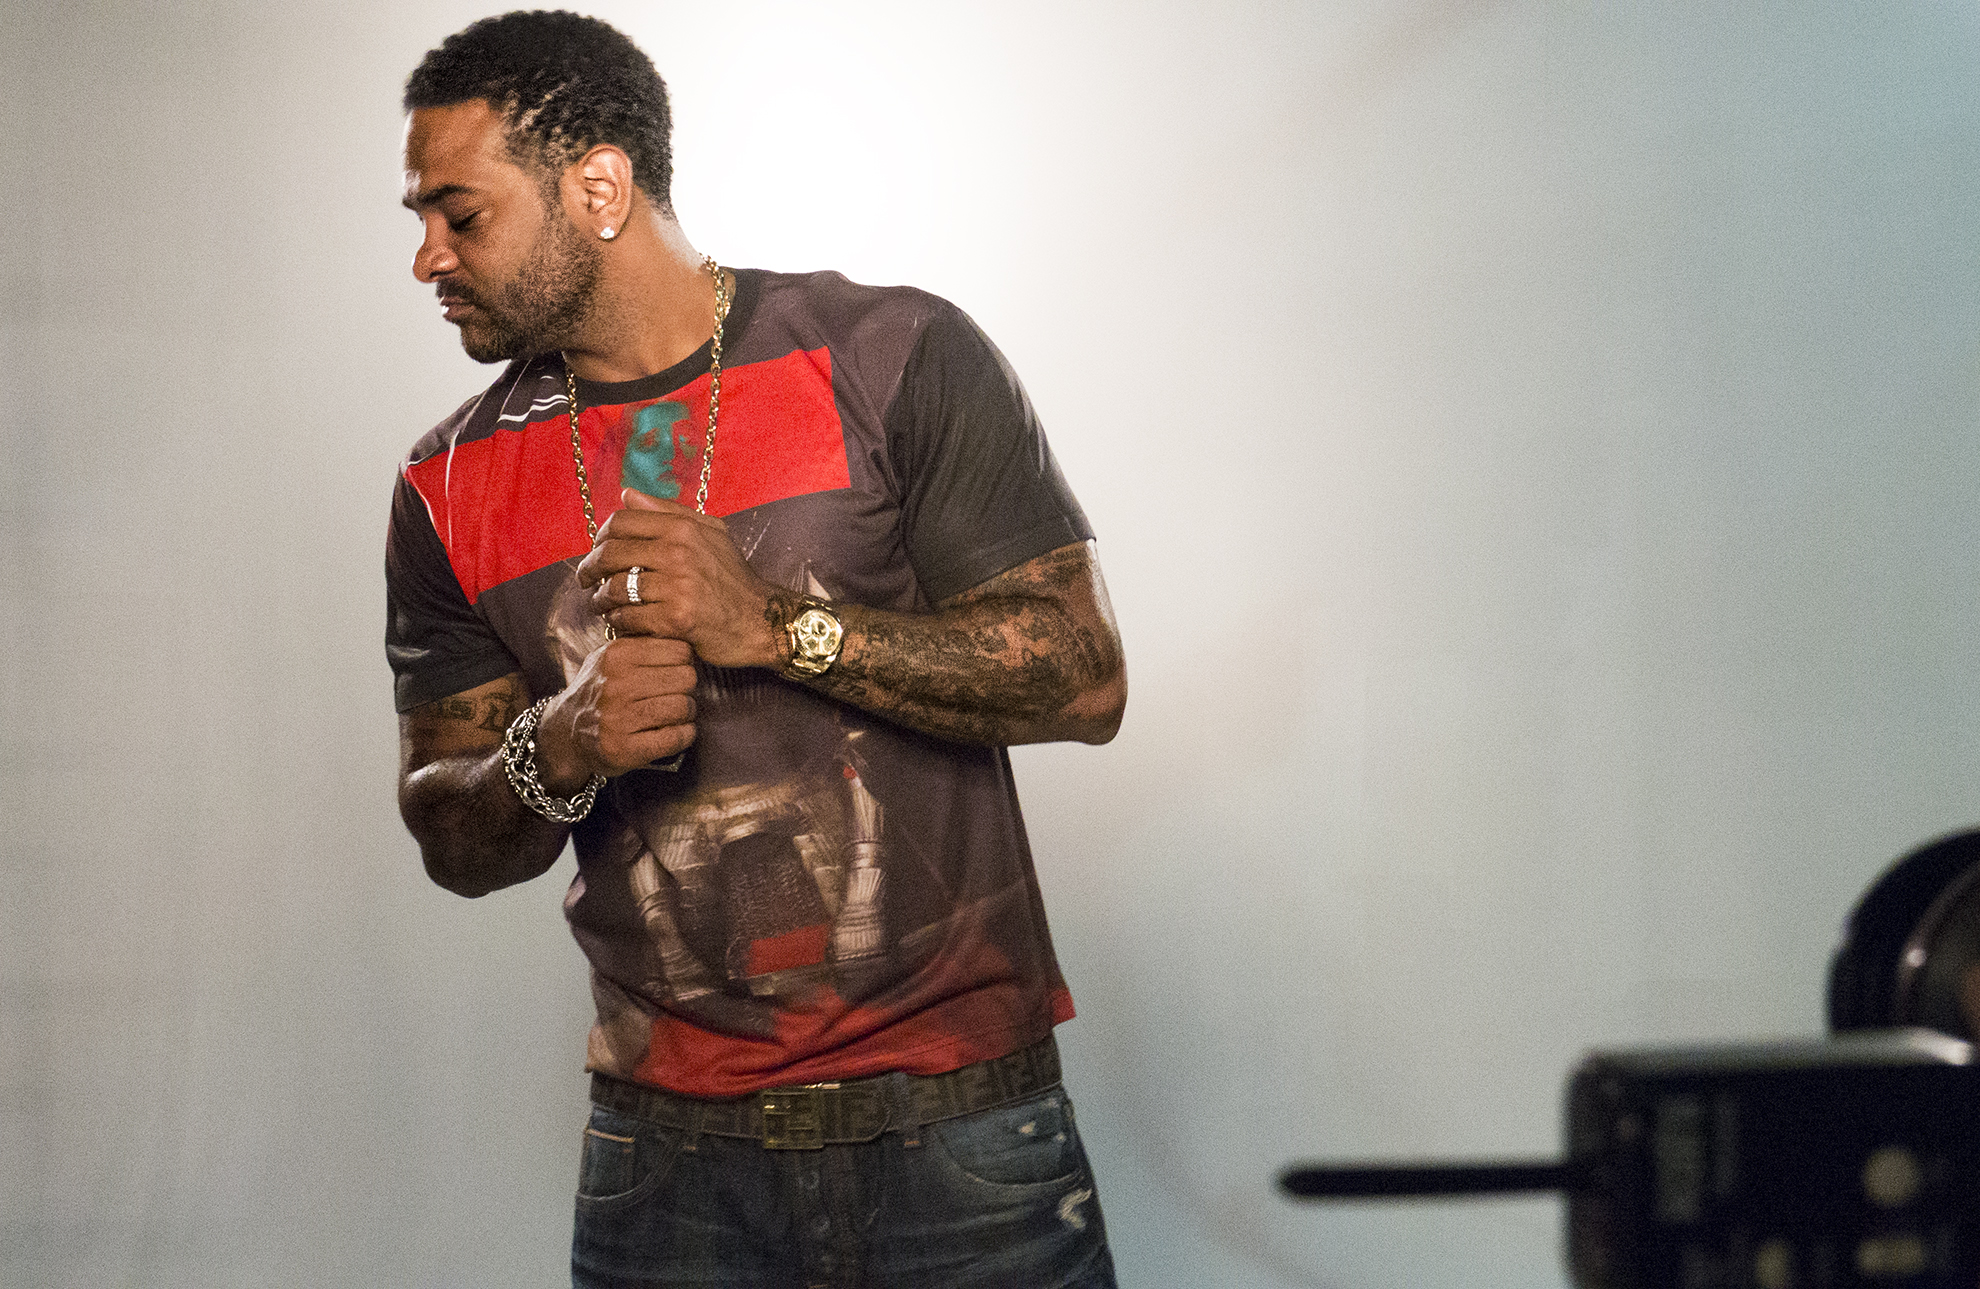 jim-jones-rolex-sky-dweller-gold-vampire-life-shirt-fendi-belt